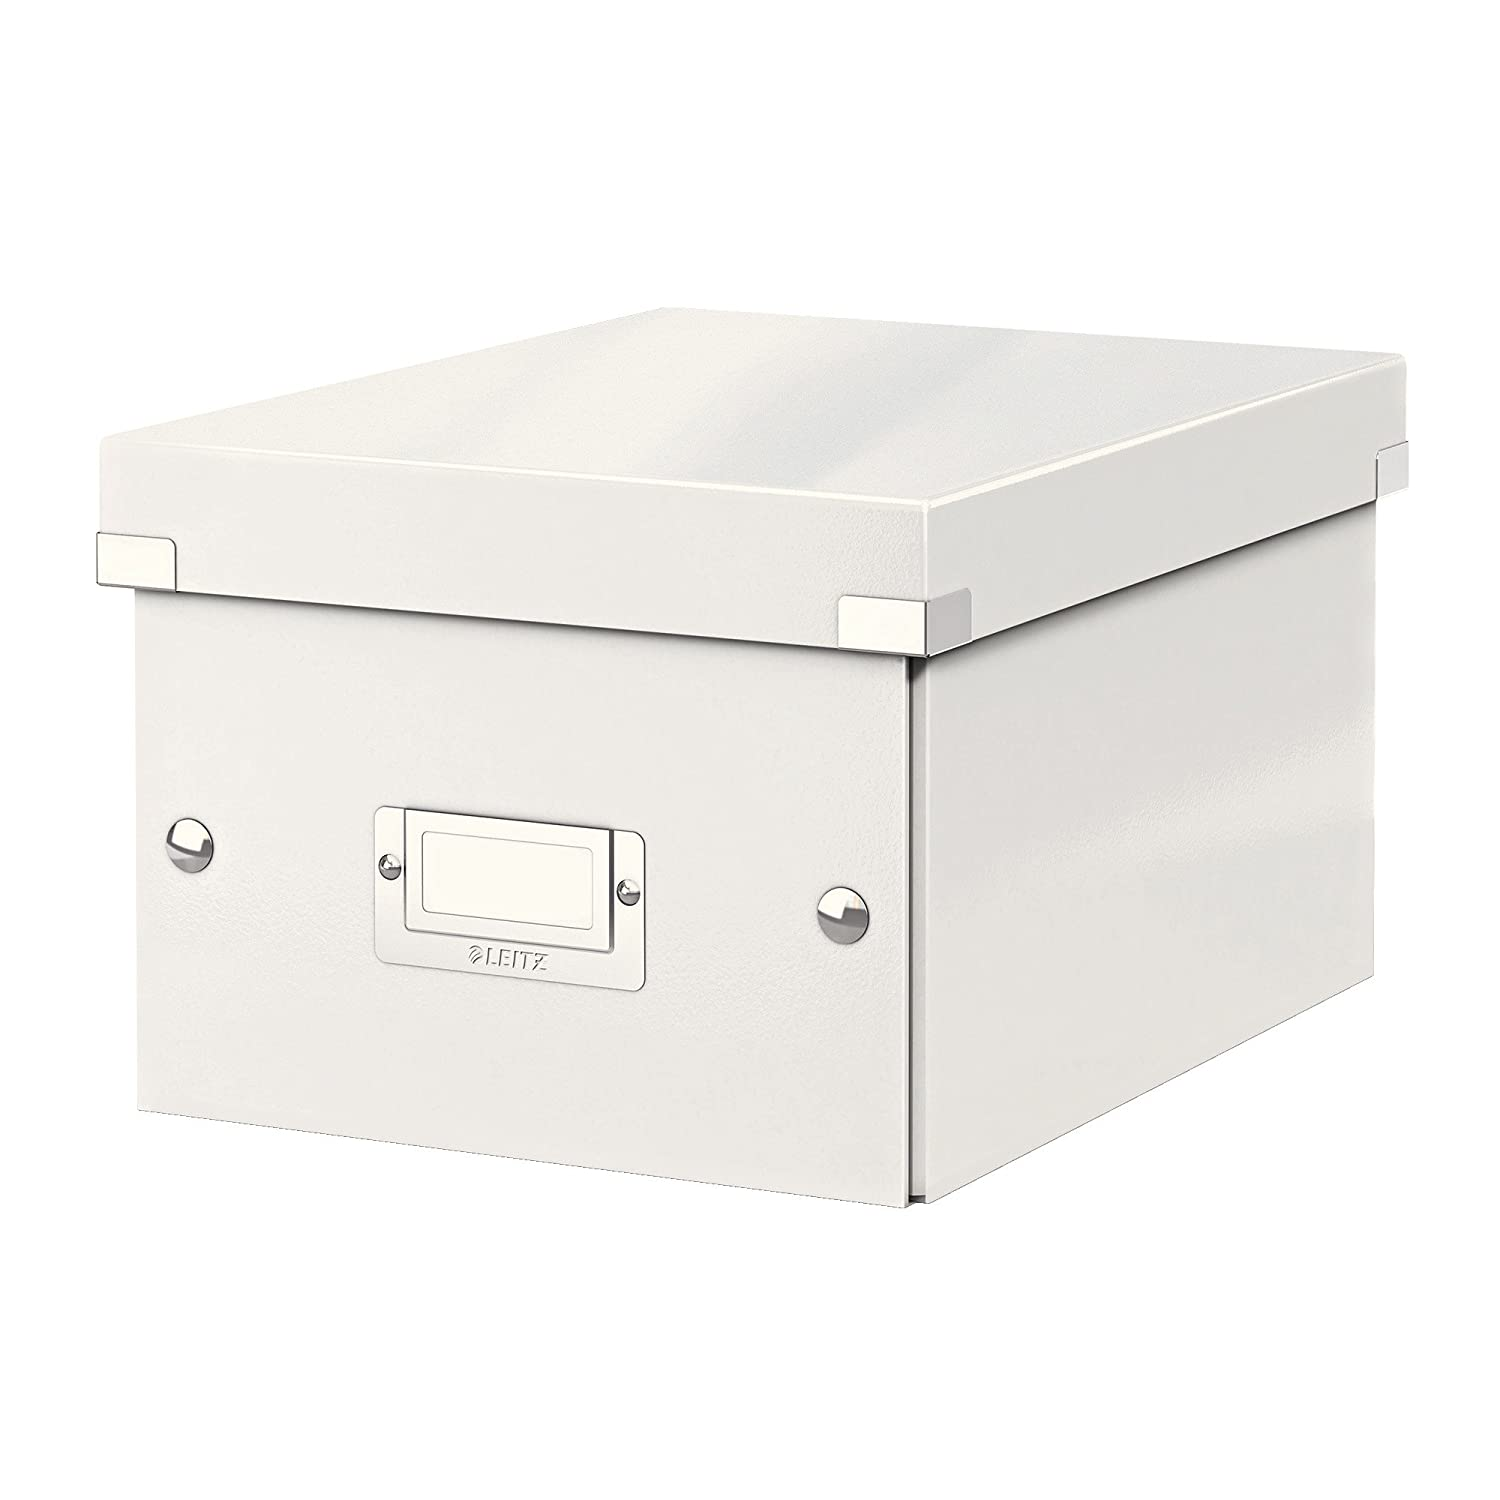 Magazine File · Media Storage · Universal Storage Boxes ·aniser Box ·  Drawer Cabinet · Suspension File Box